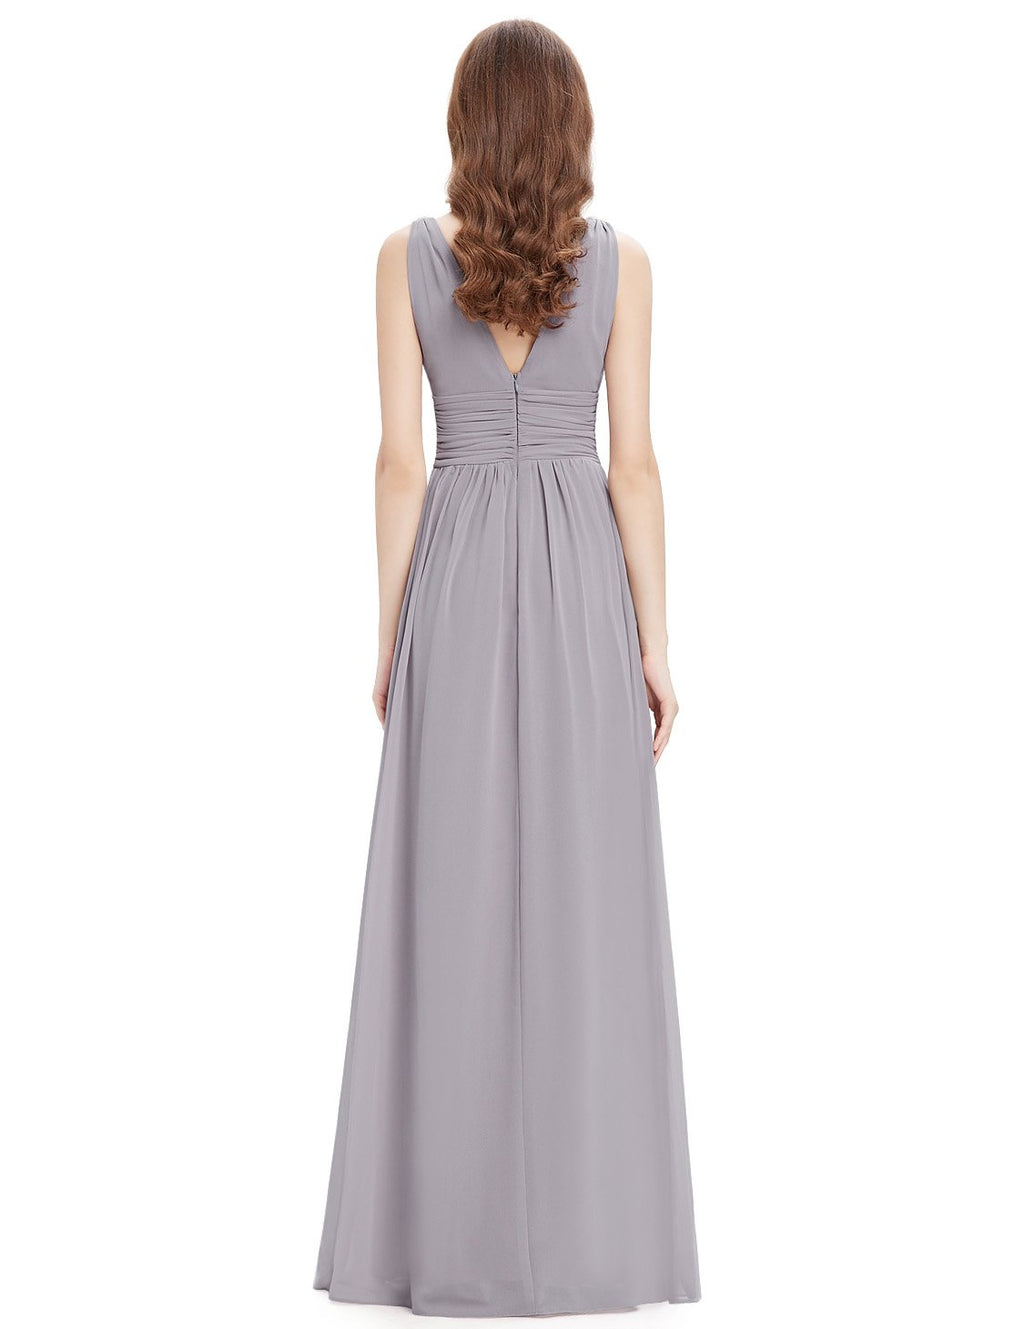 Chiffon Elegant Evening Gown Grey